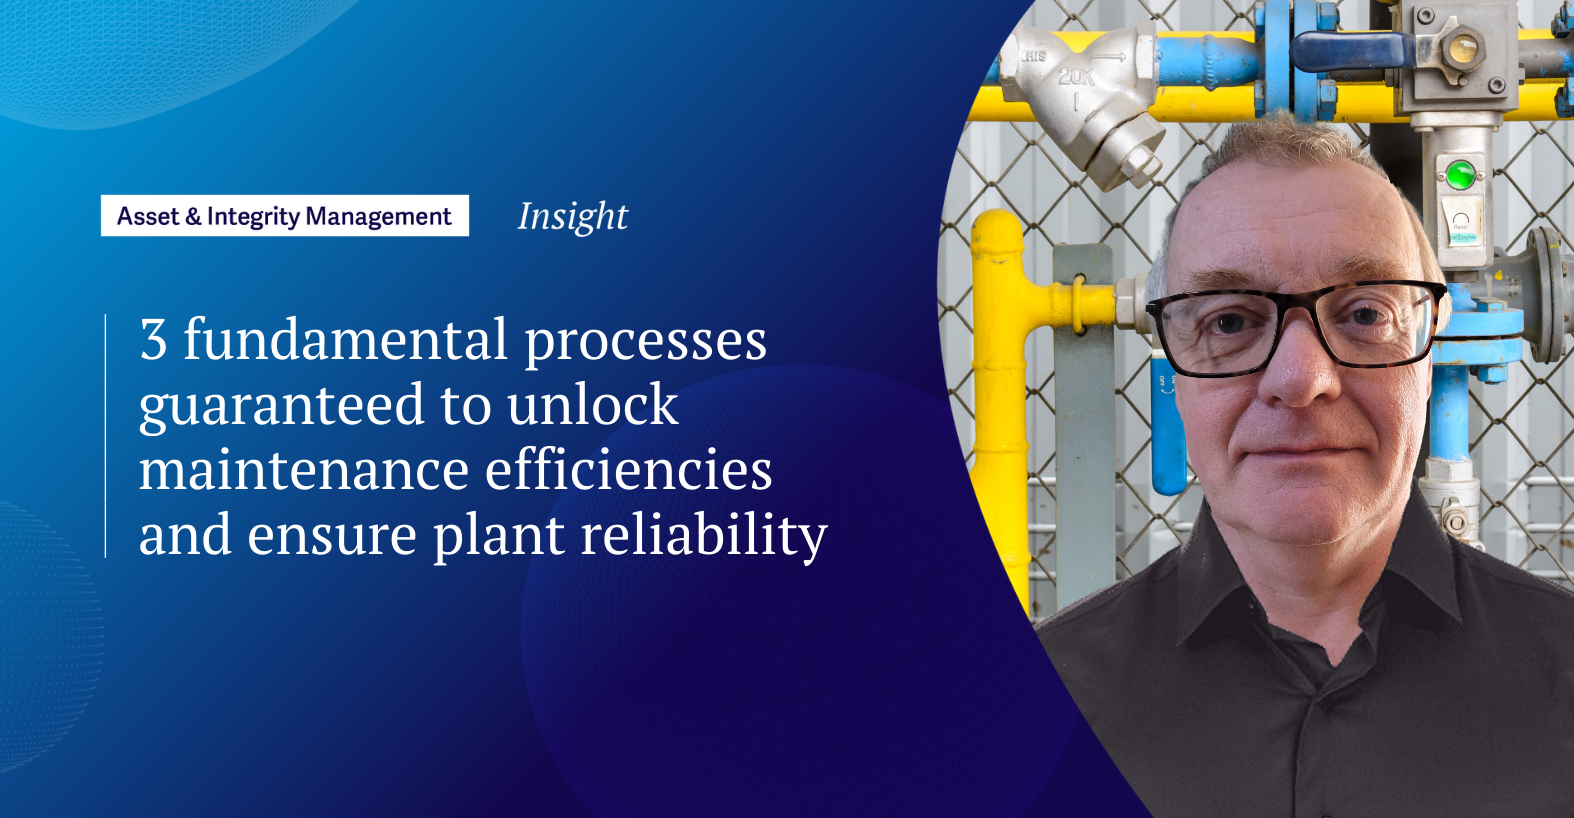 3 fundamental processes guaranteed to unlock maintenance efficiencies and ensure plant reliability